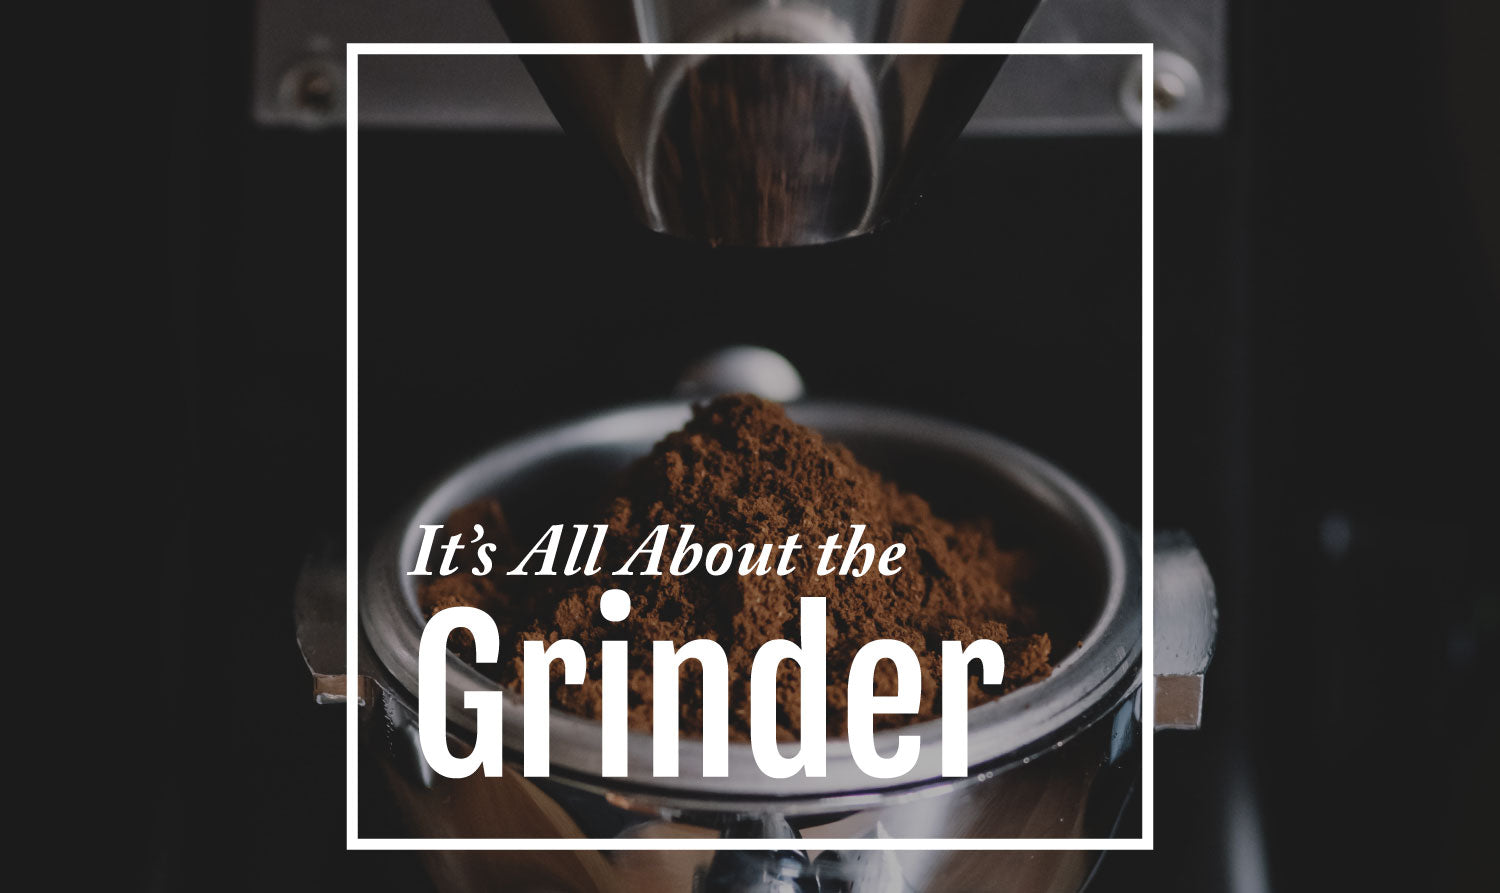 It's All About the Grinder